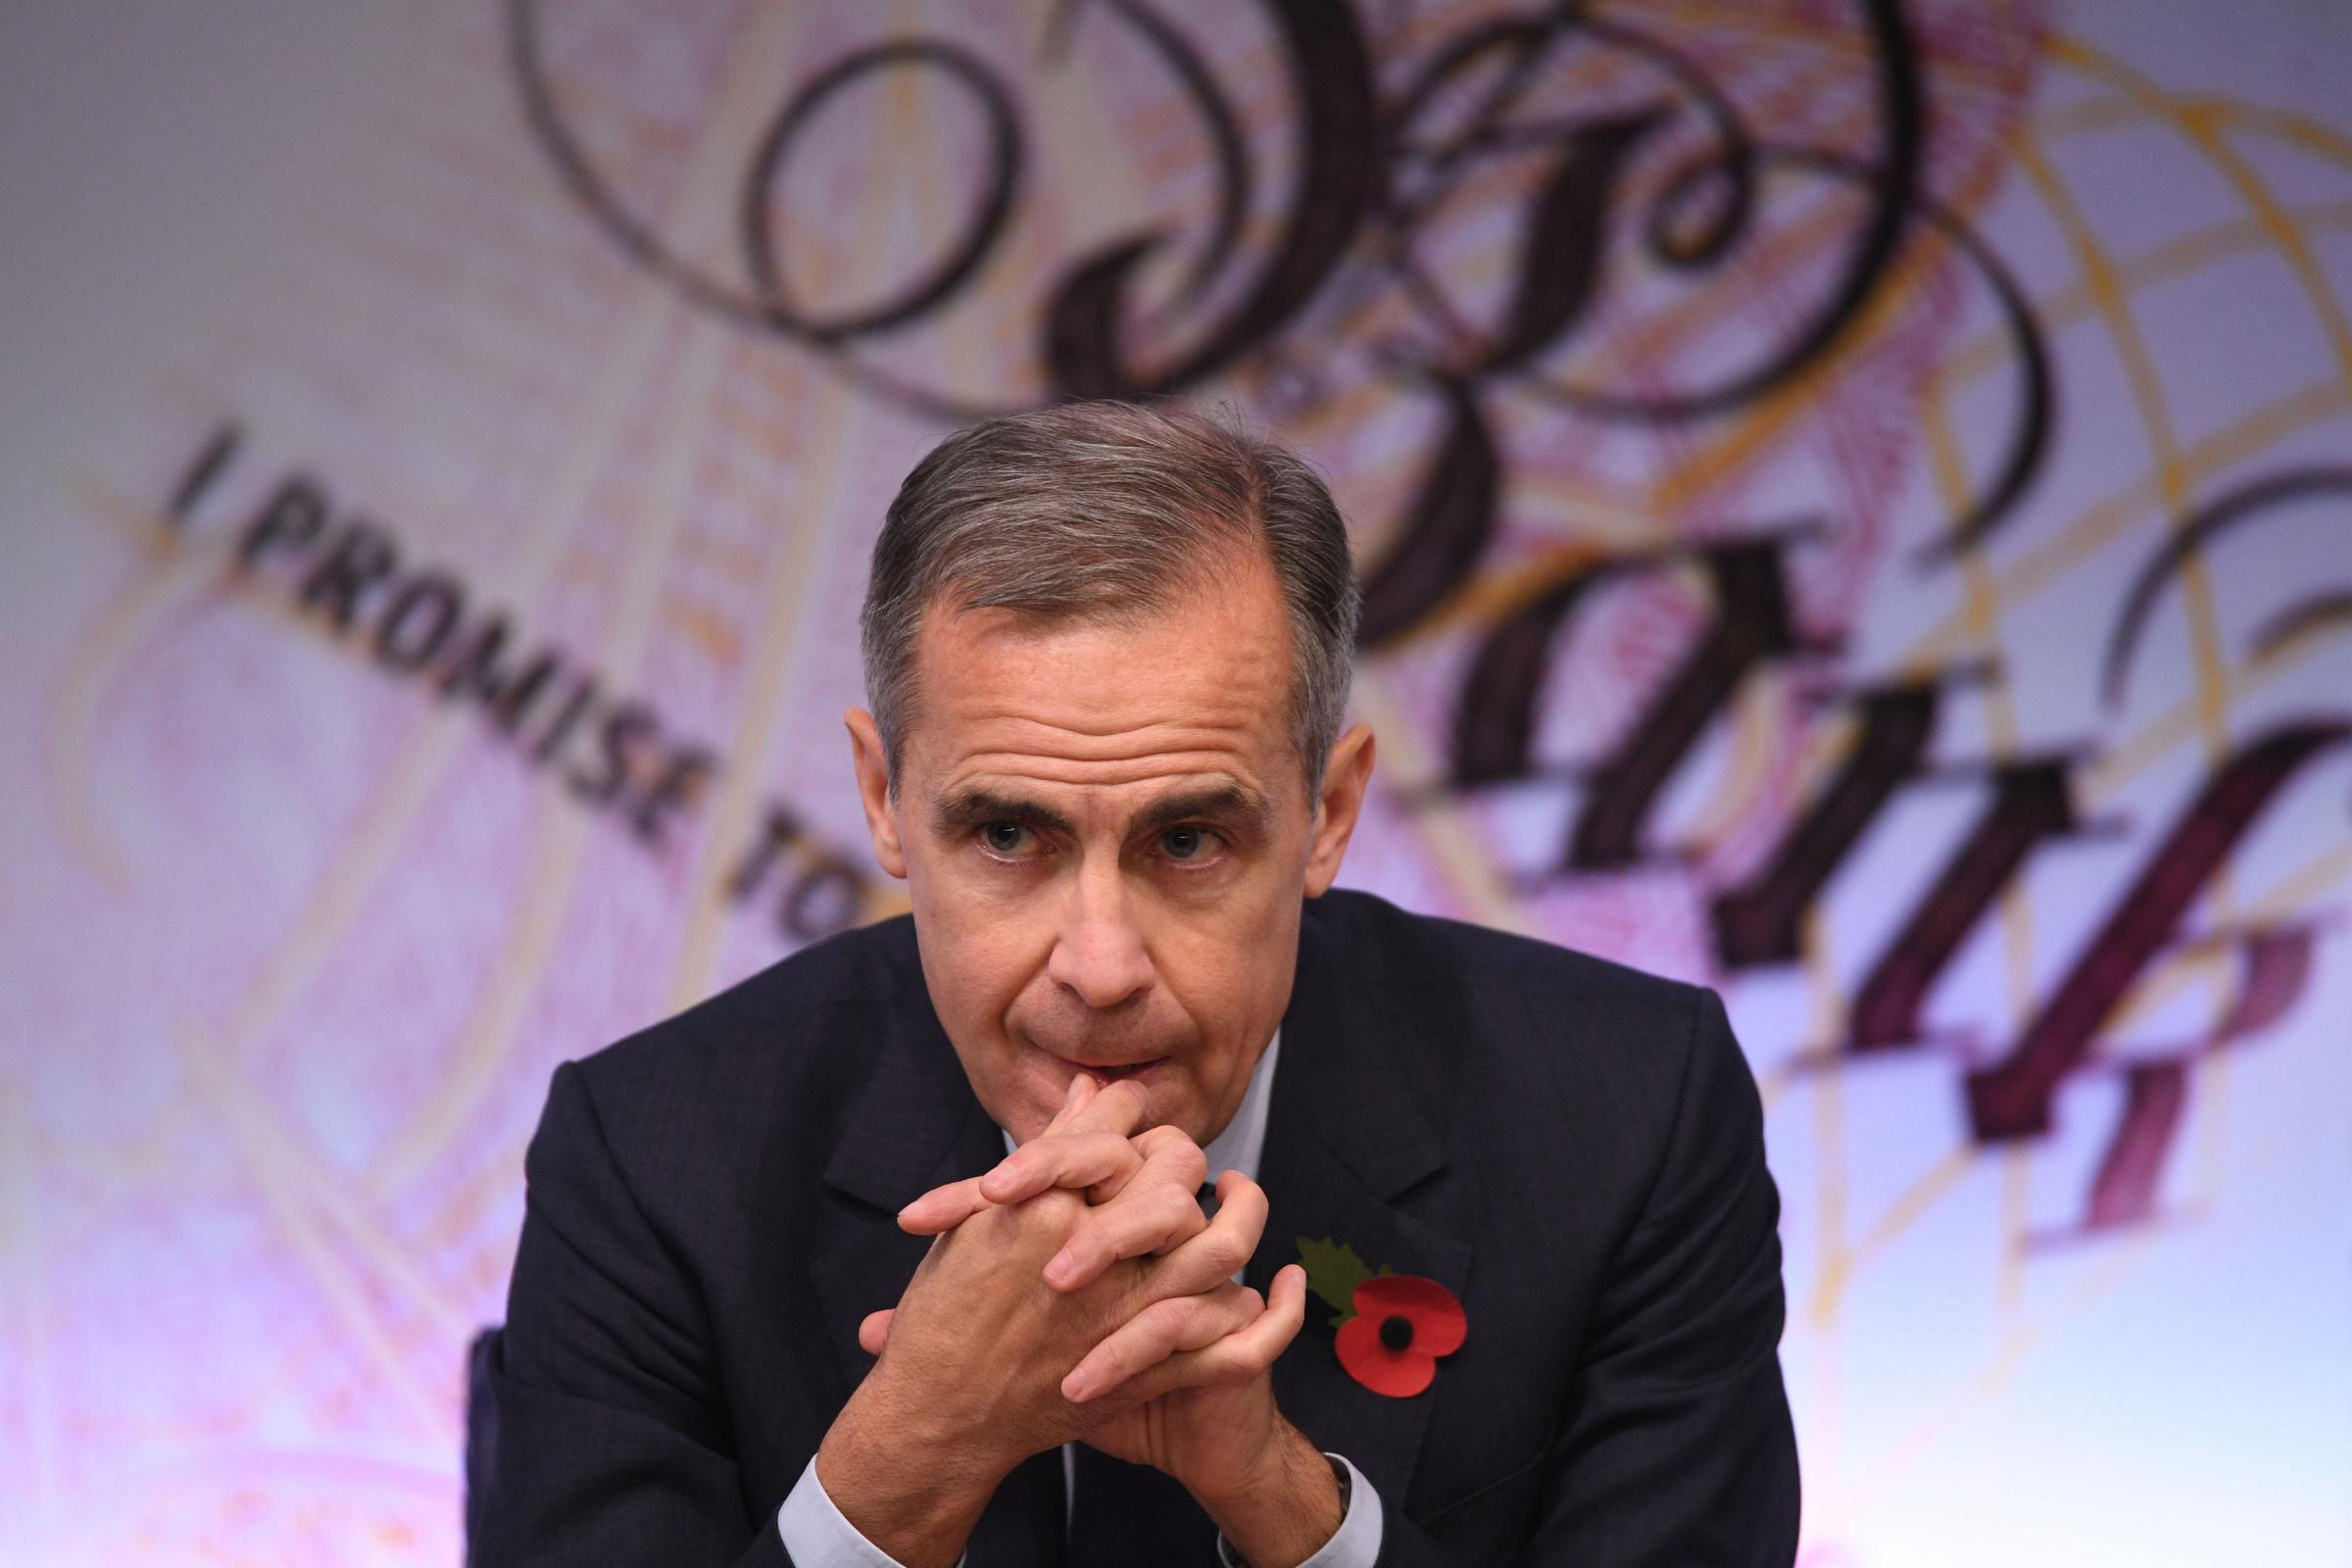 RATE RISE: Mark Carney, the Governor of the Bank of England